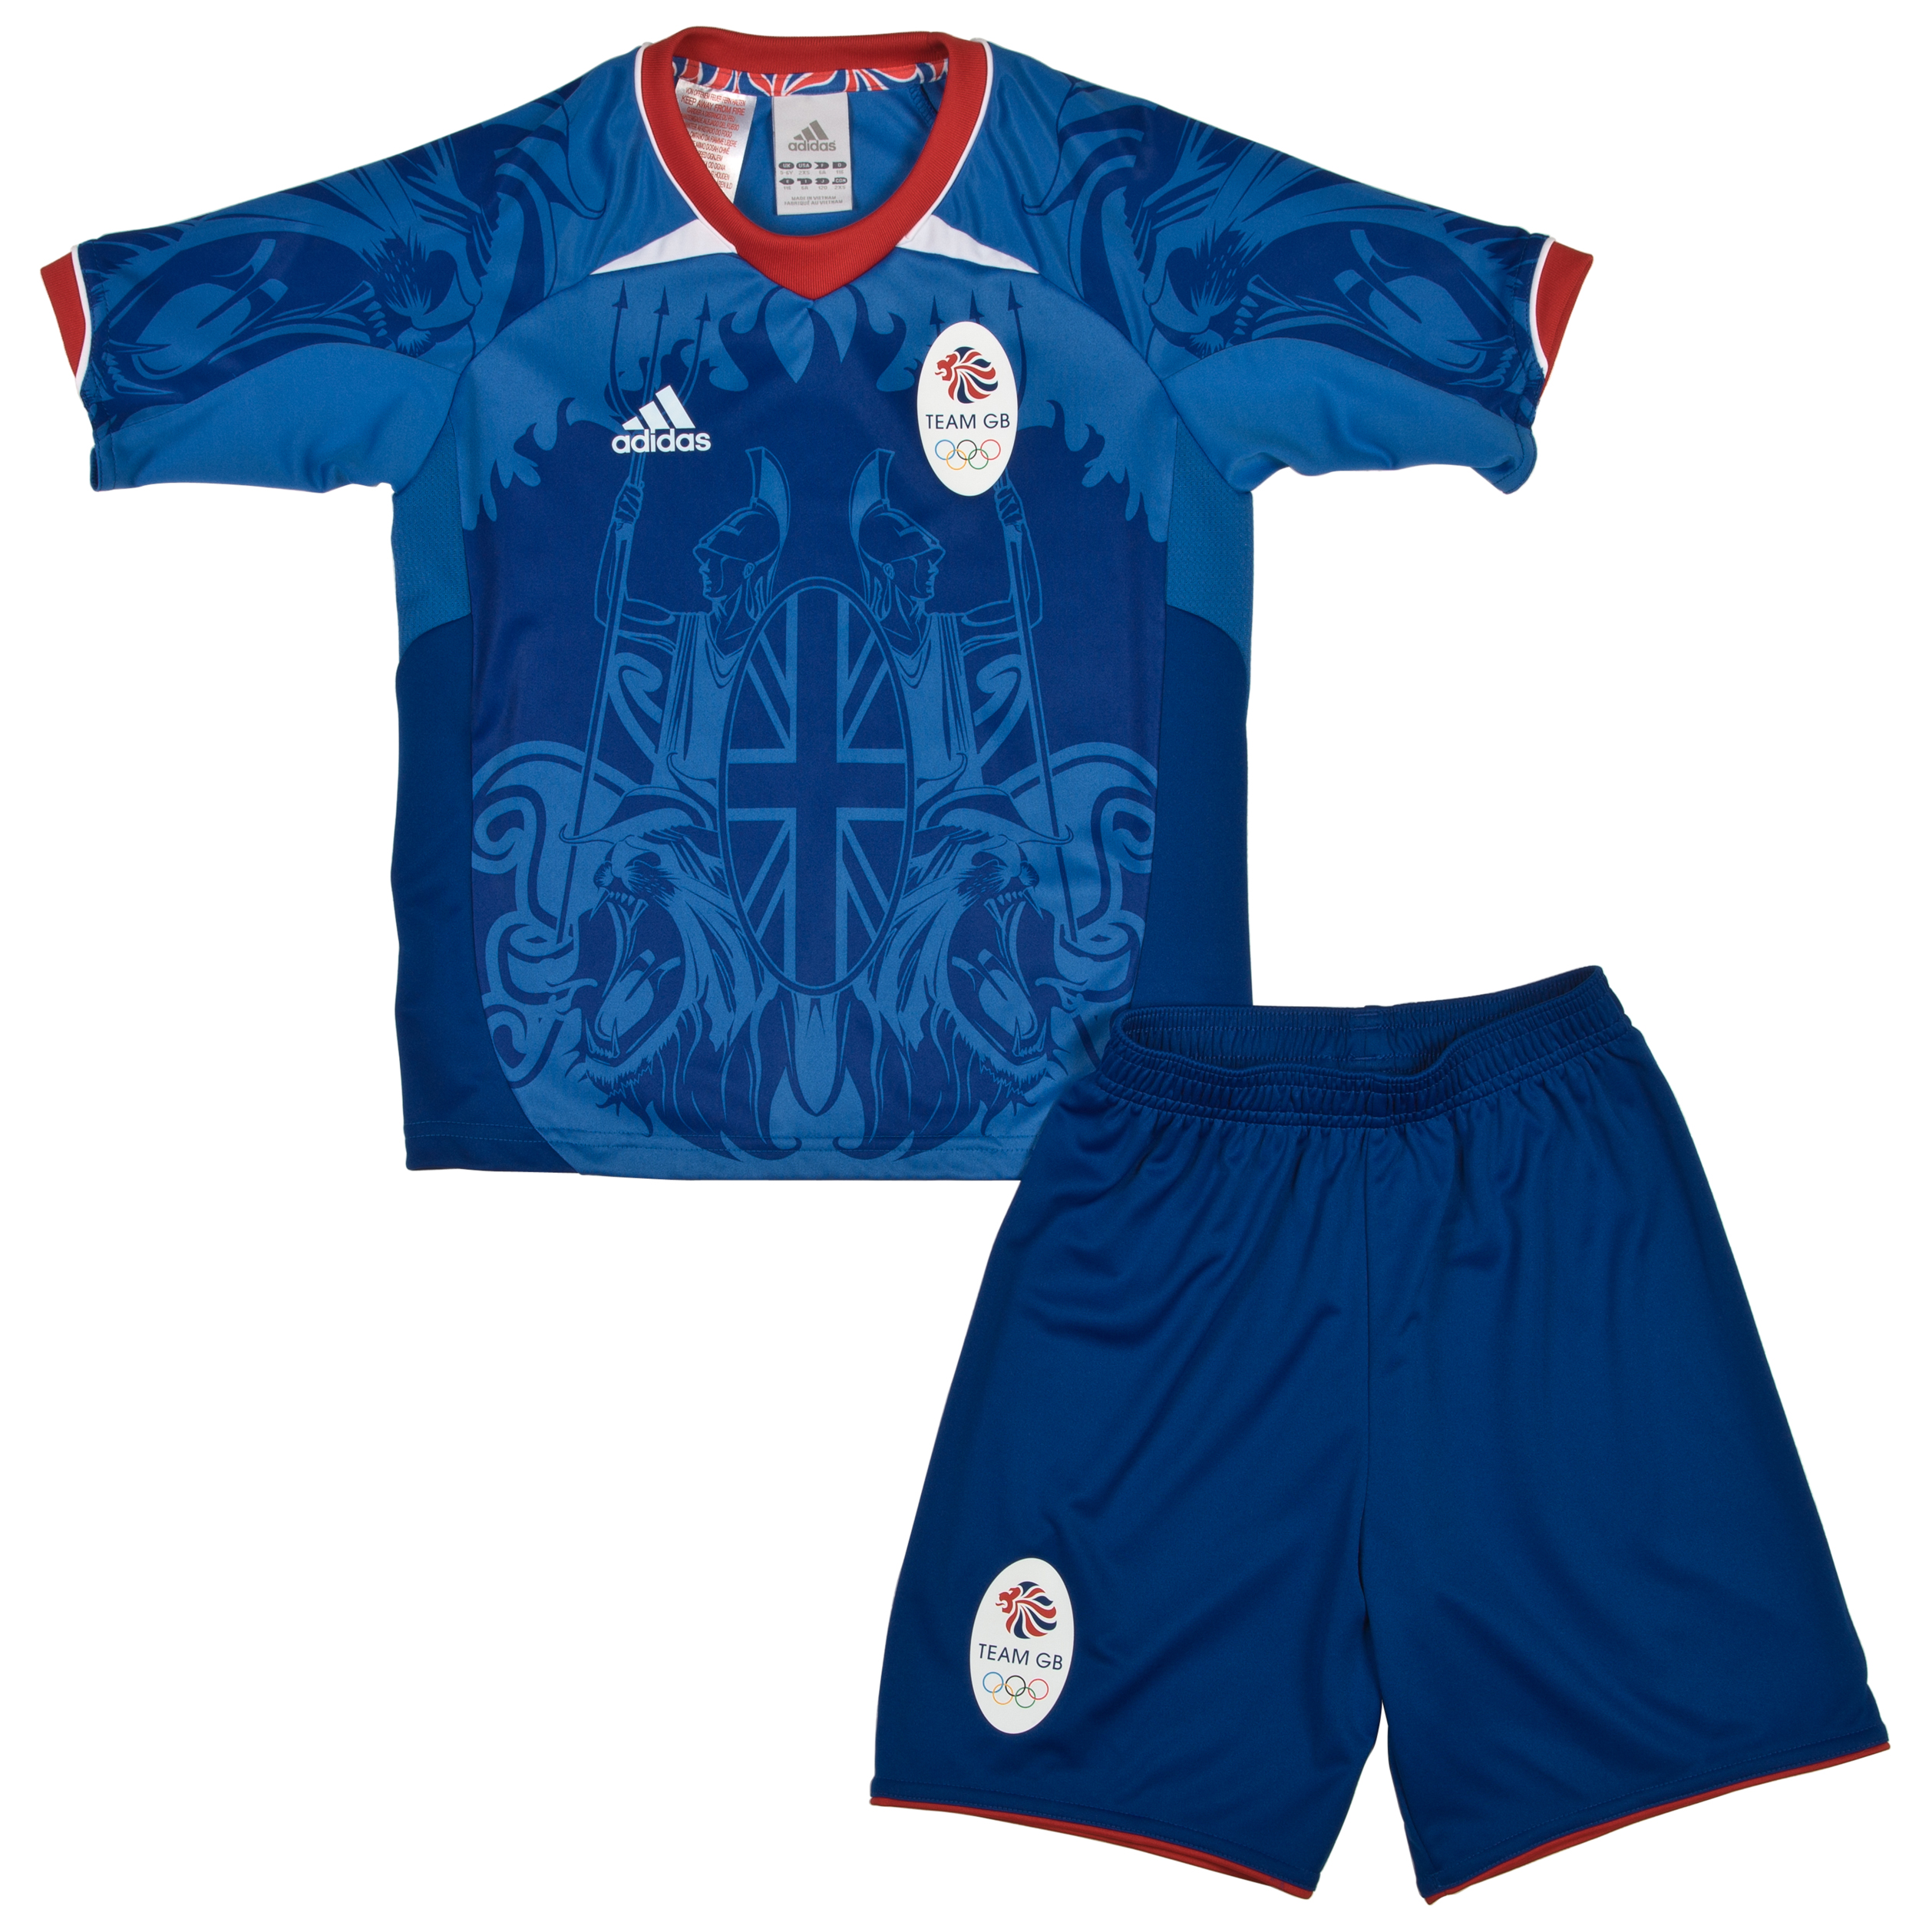 adidas Team GB Supporters Minikit Collegiate Royal / Air Force Blue / University Red